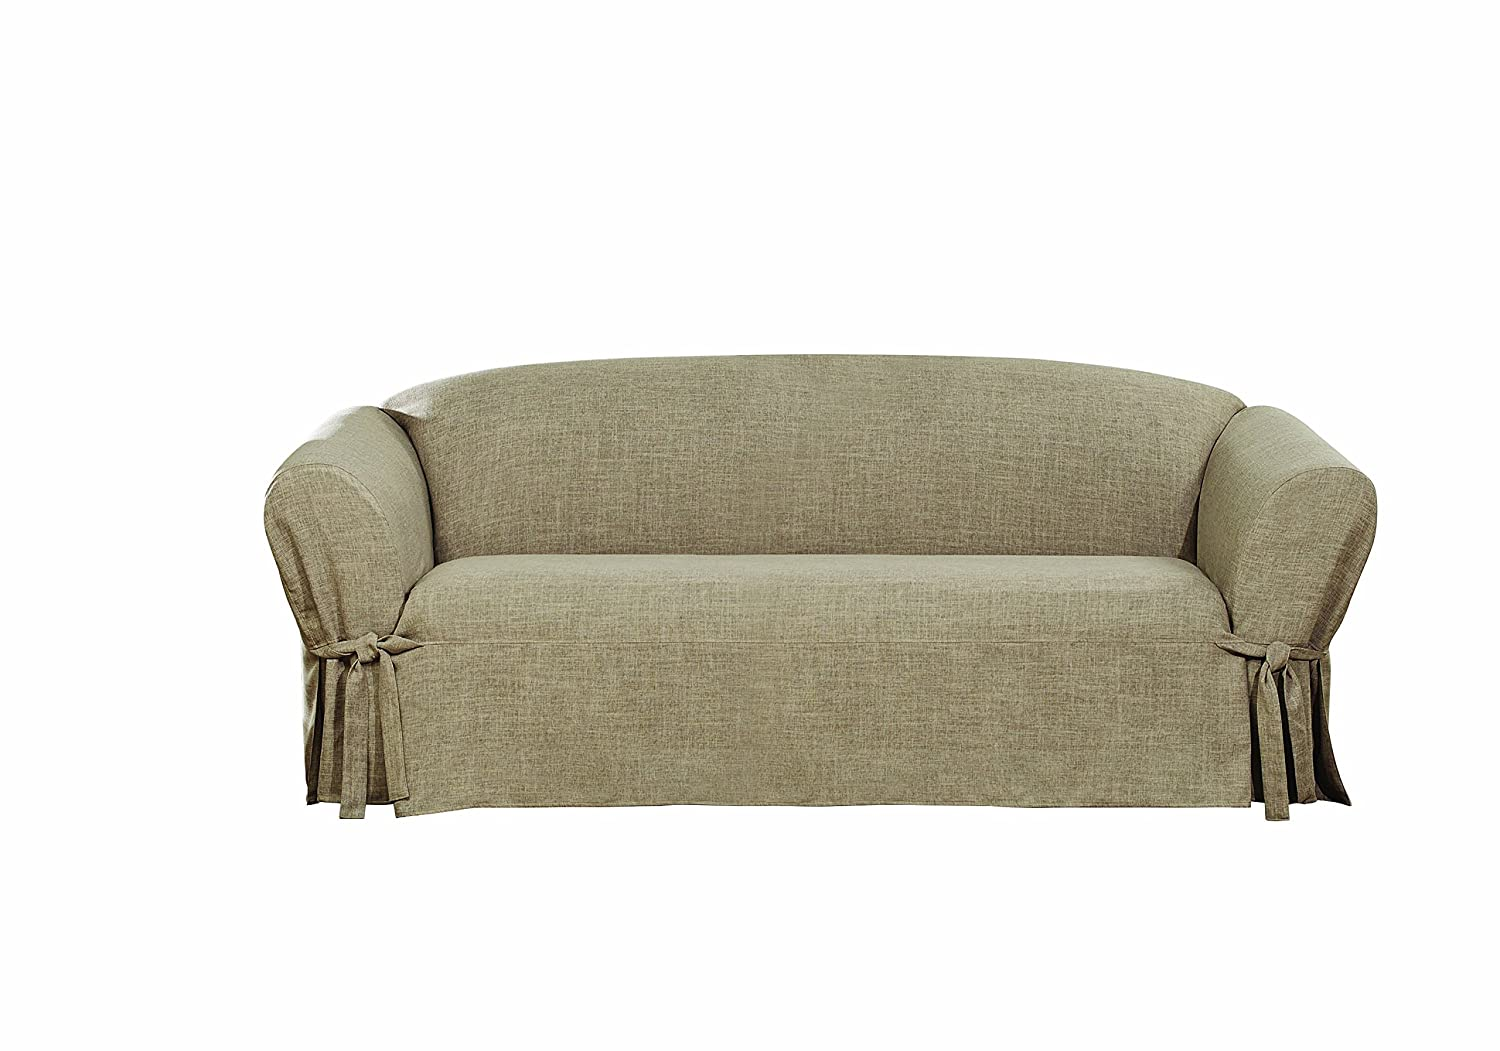 Nice Amazon.com: Sure Fit Textured Linen   Sofa Slipcover   Sand (SF44992): Home  U0026 Kitchen